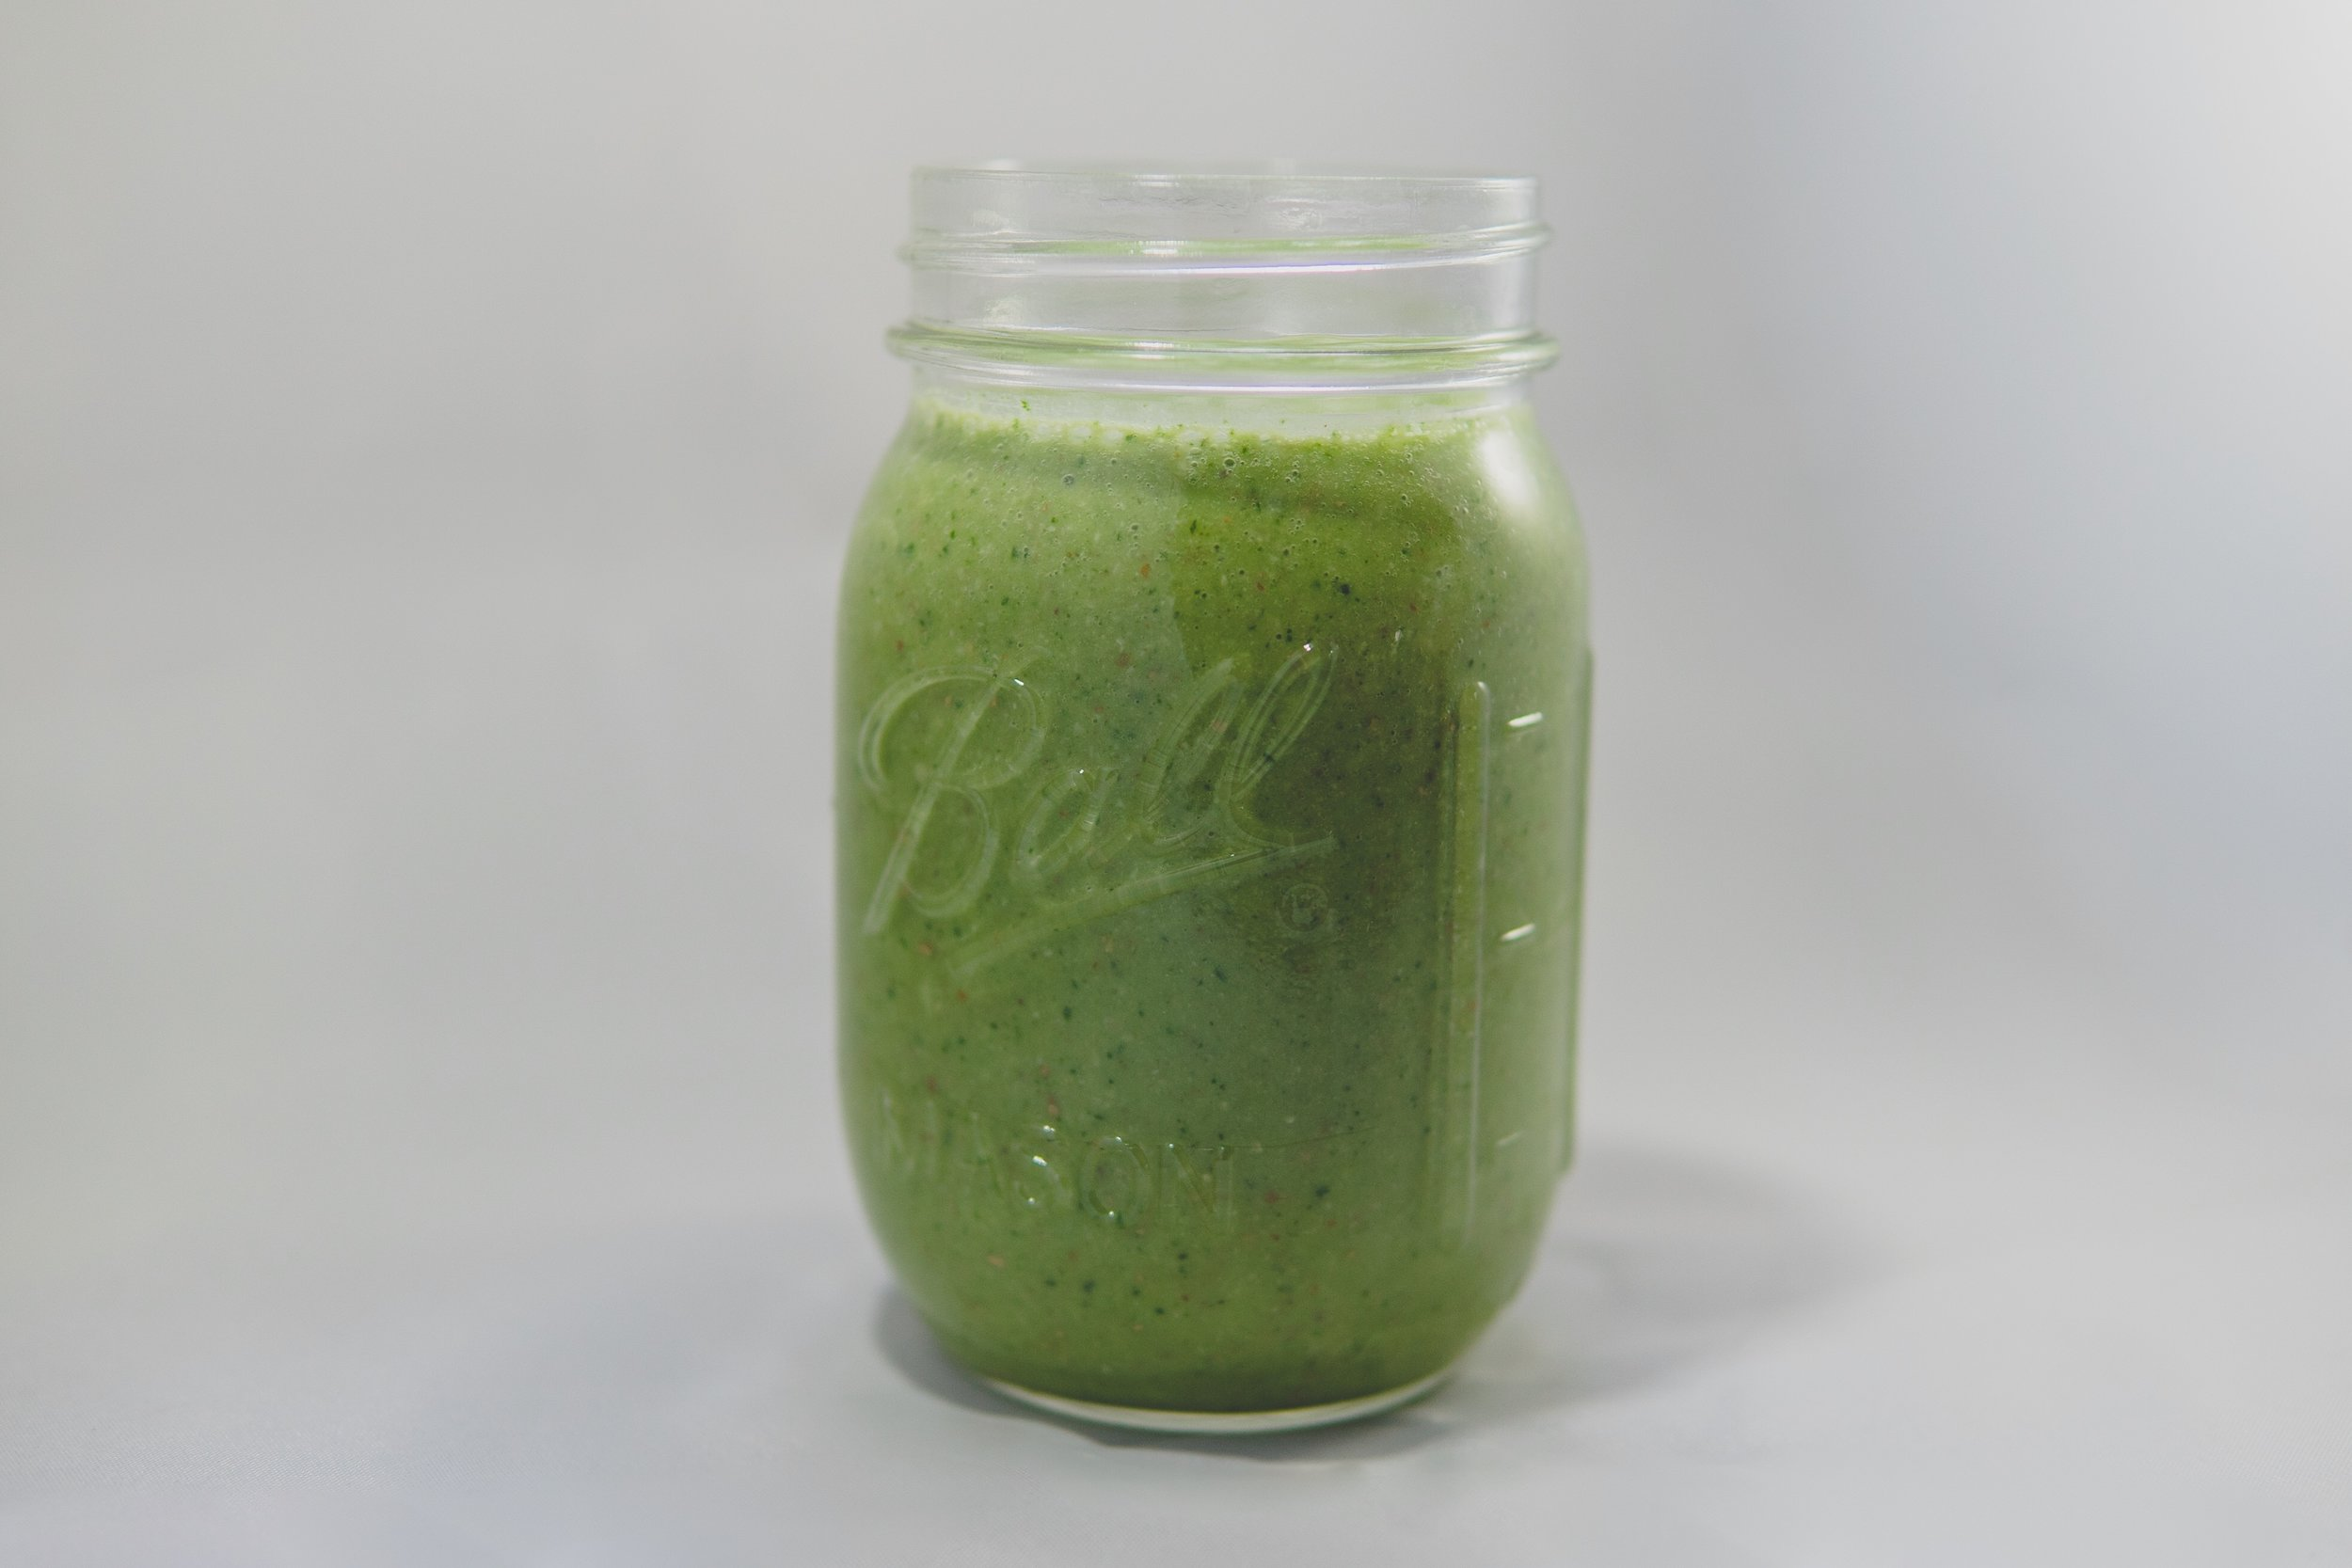 Zen Energy Smoothie - 2 pitted dates1 ripe bananaa handful of almonds1 leaf of kalepinch of dry, flaked, unsweetened coconut2 tablespoons of Maca powder